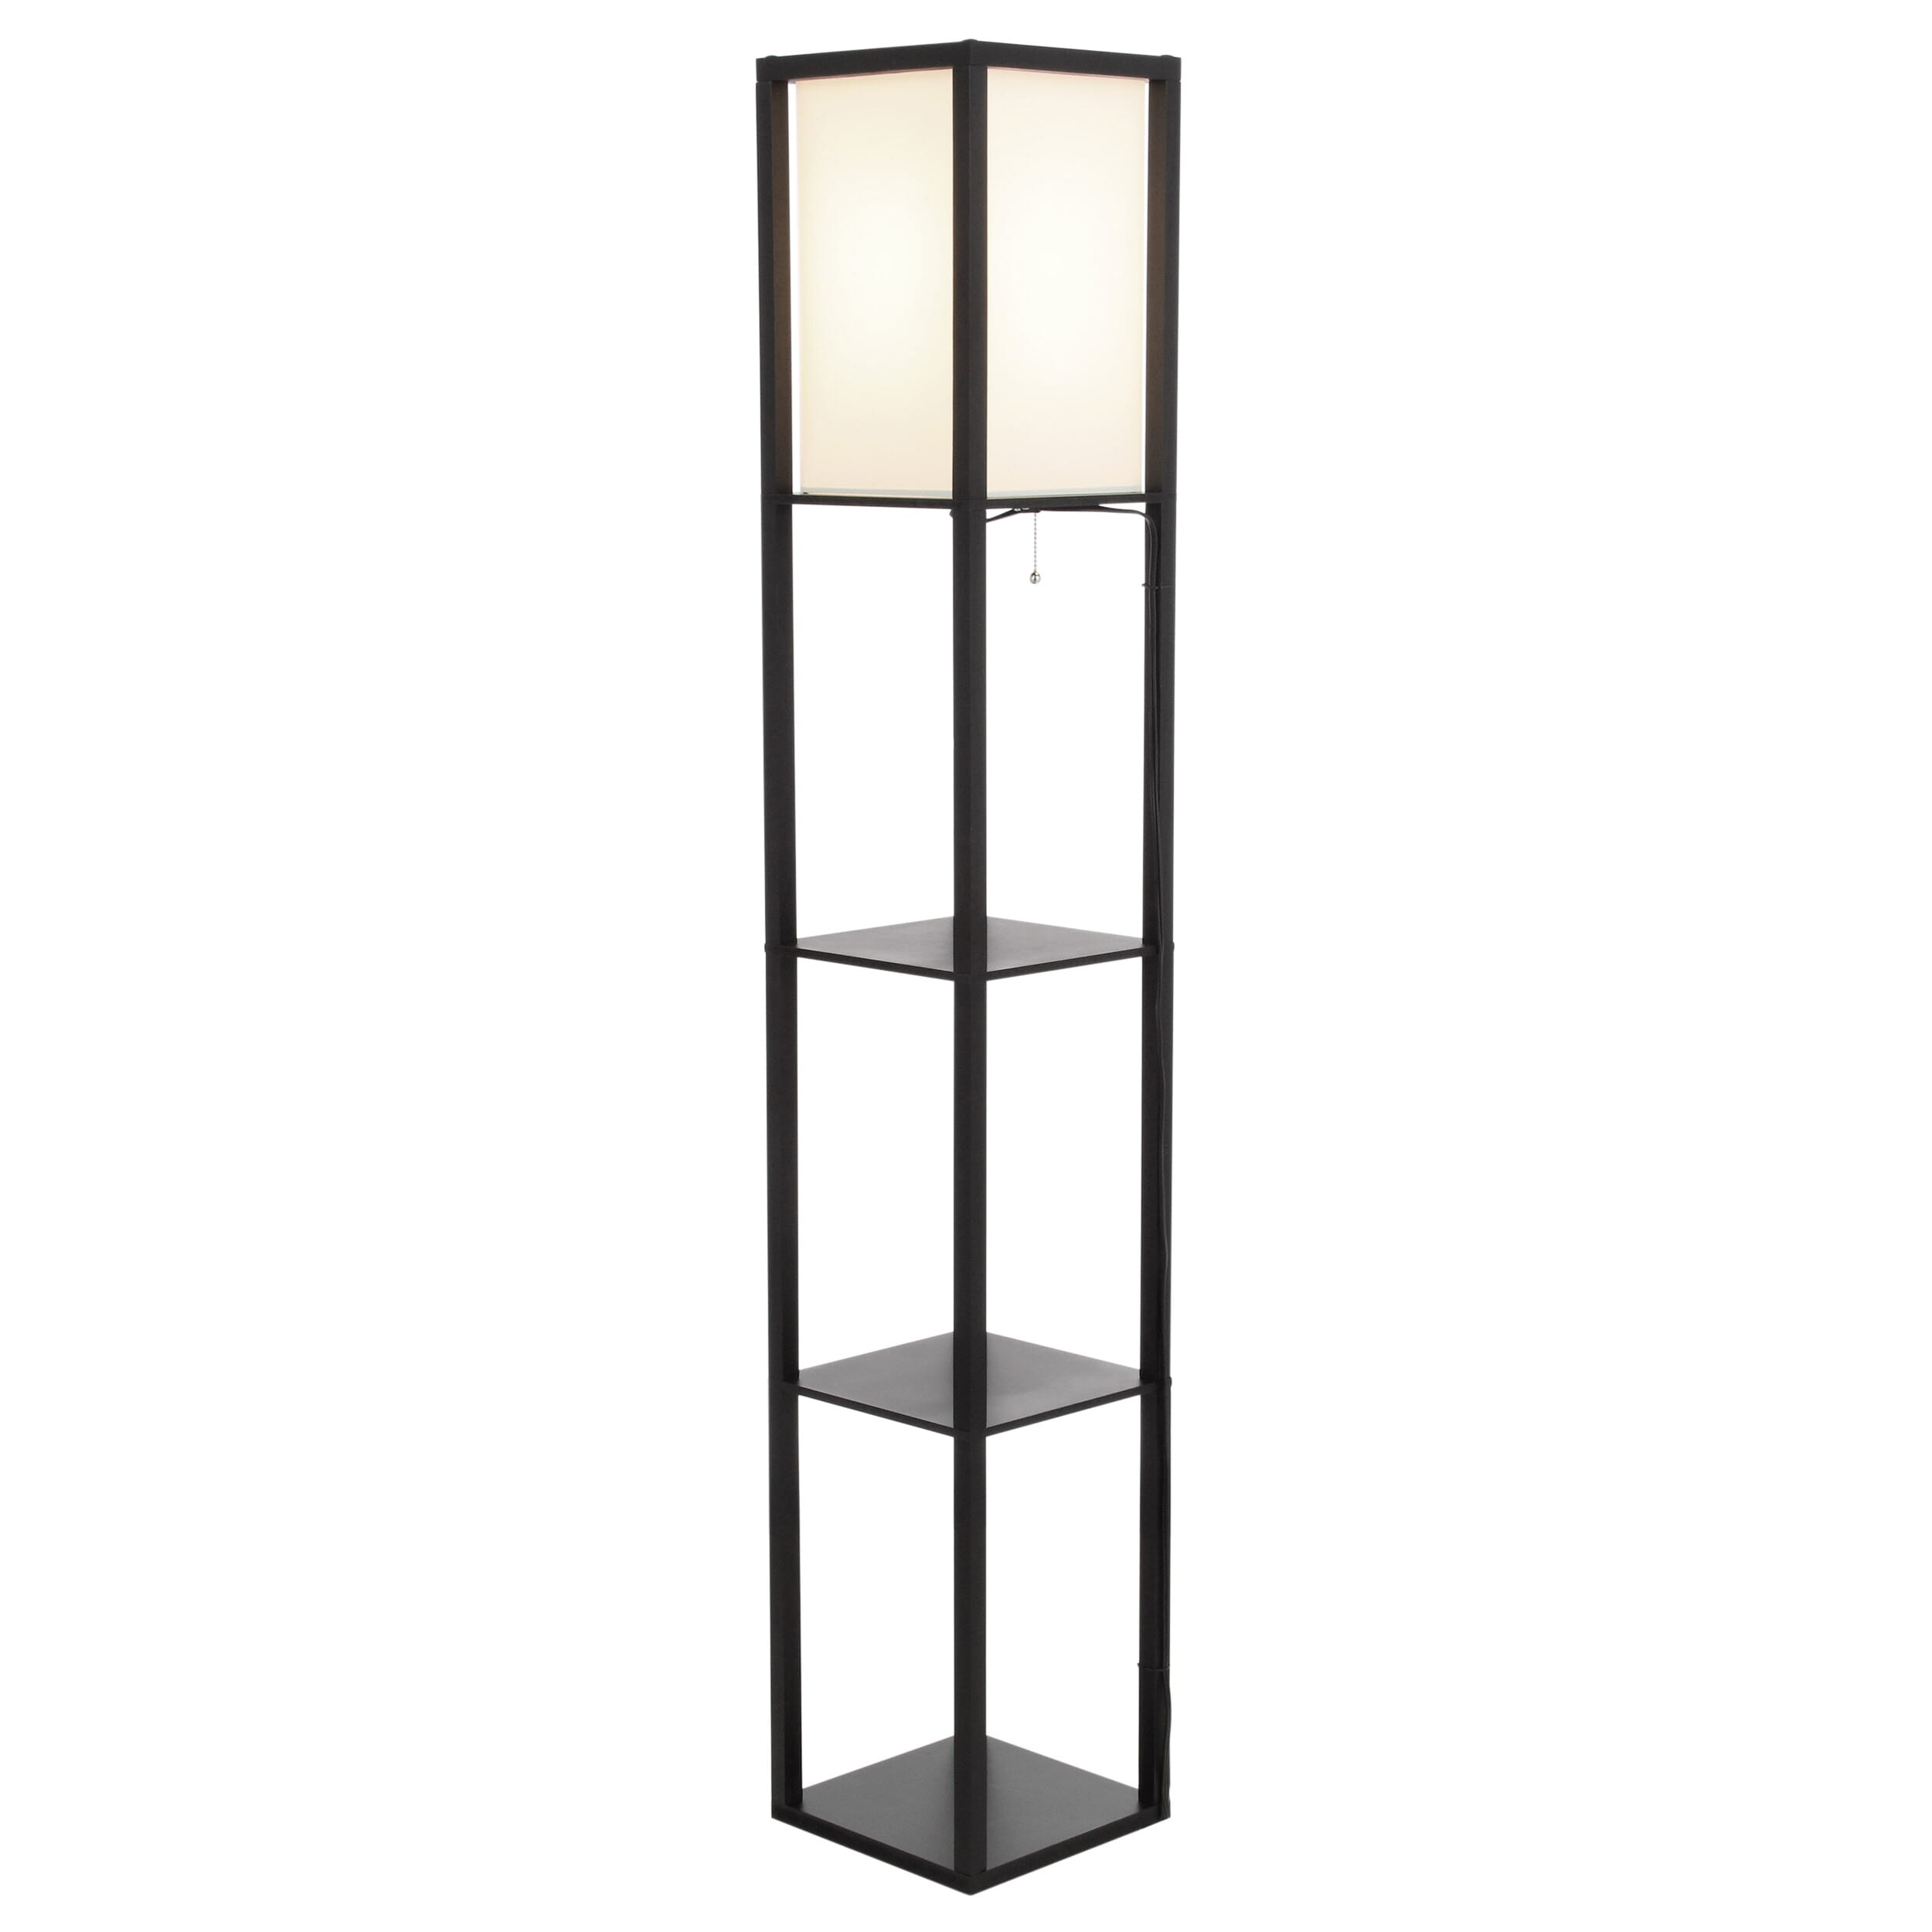 Floor lamp featuring a linen shade in the top section